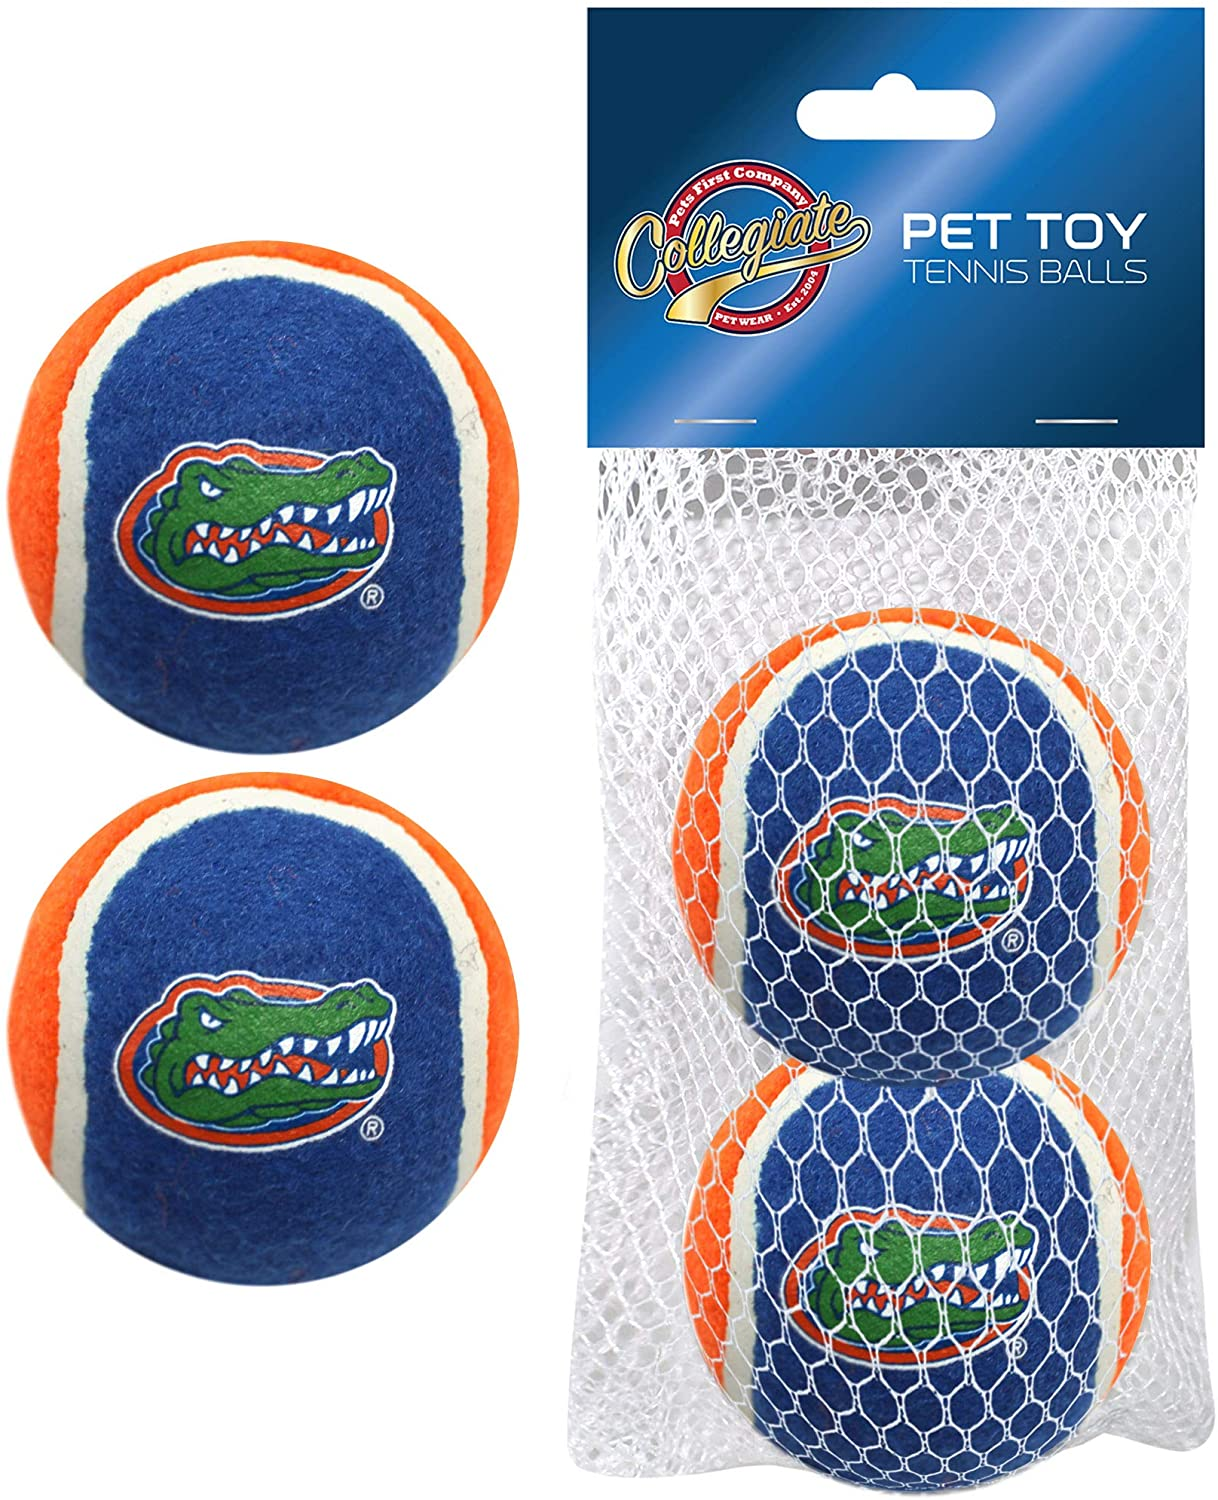 Pets First NCAA Florida Gators Tennis Balls for Dogs & Cats - 2 Piece Set with Team Logo in Vibrant Team Color